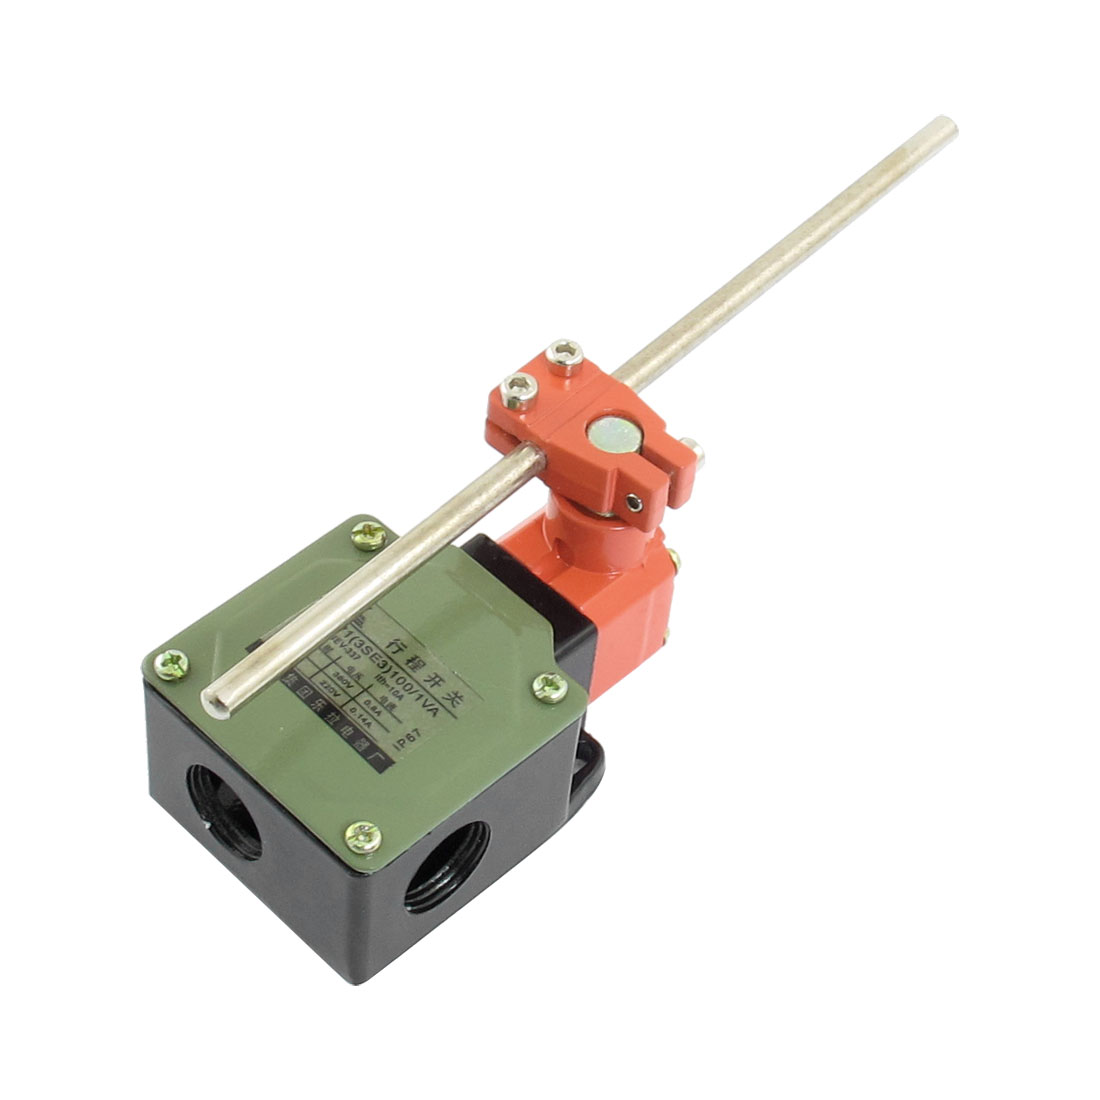 0.14A 220VDC 0.8A 380VAC 1NO 1NC SPDT Momentary Rotary Adjustable Lever Arm Limit Switch